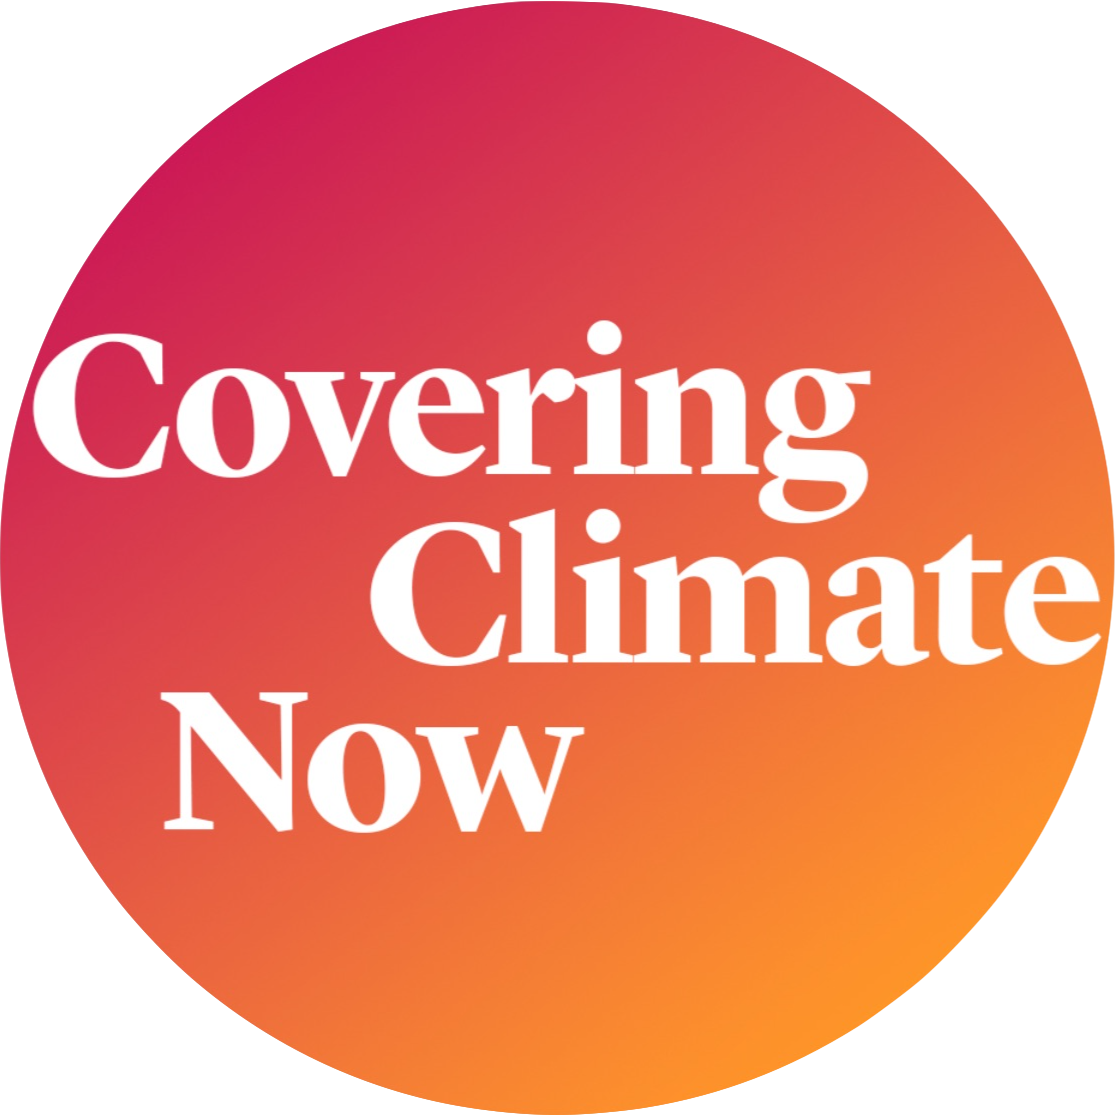 Covering Climate Now logo